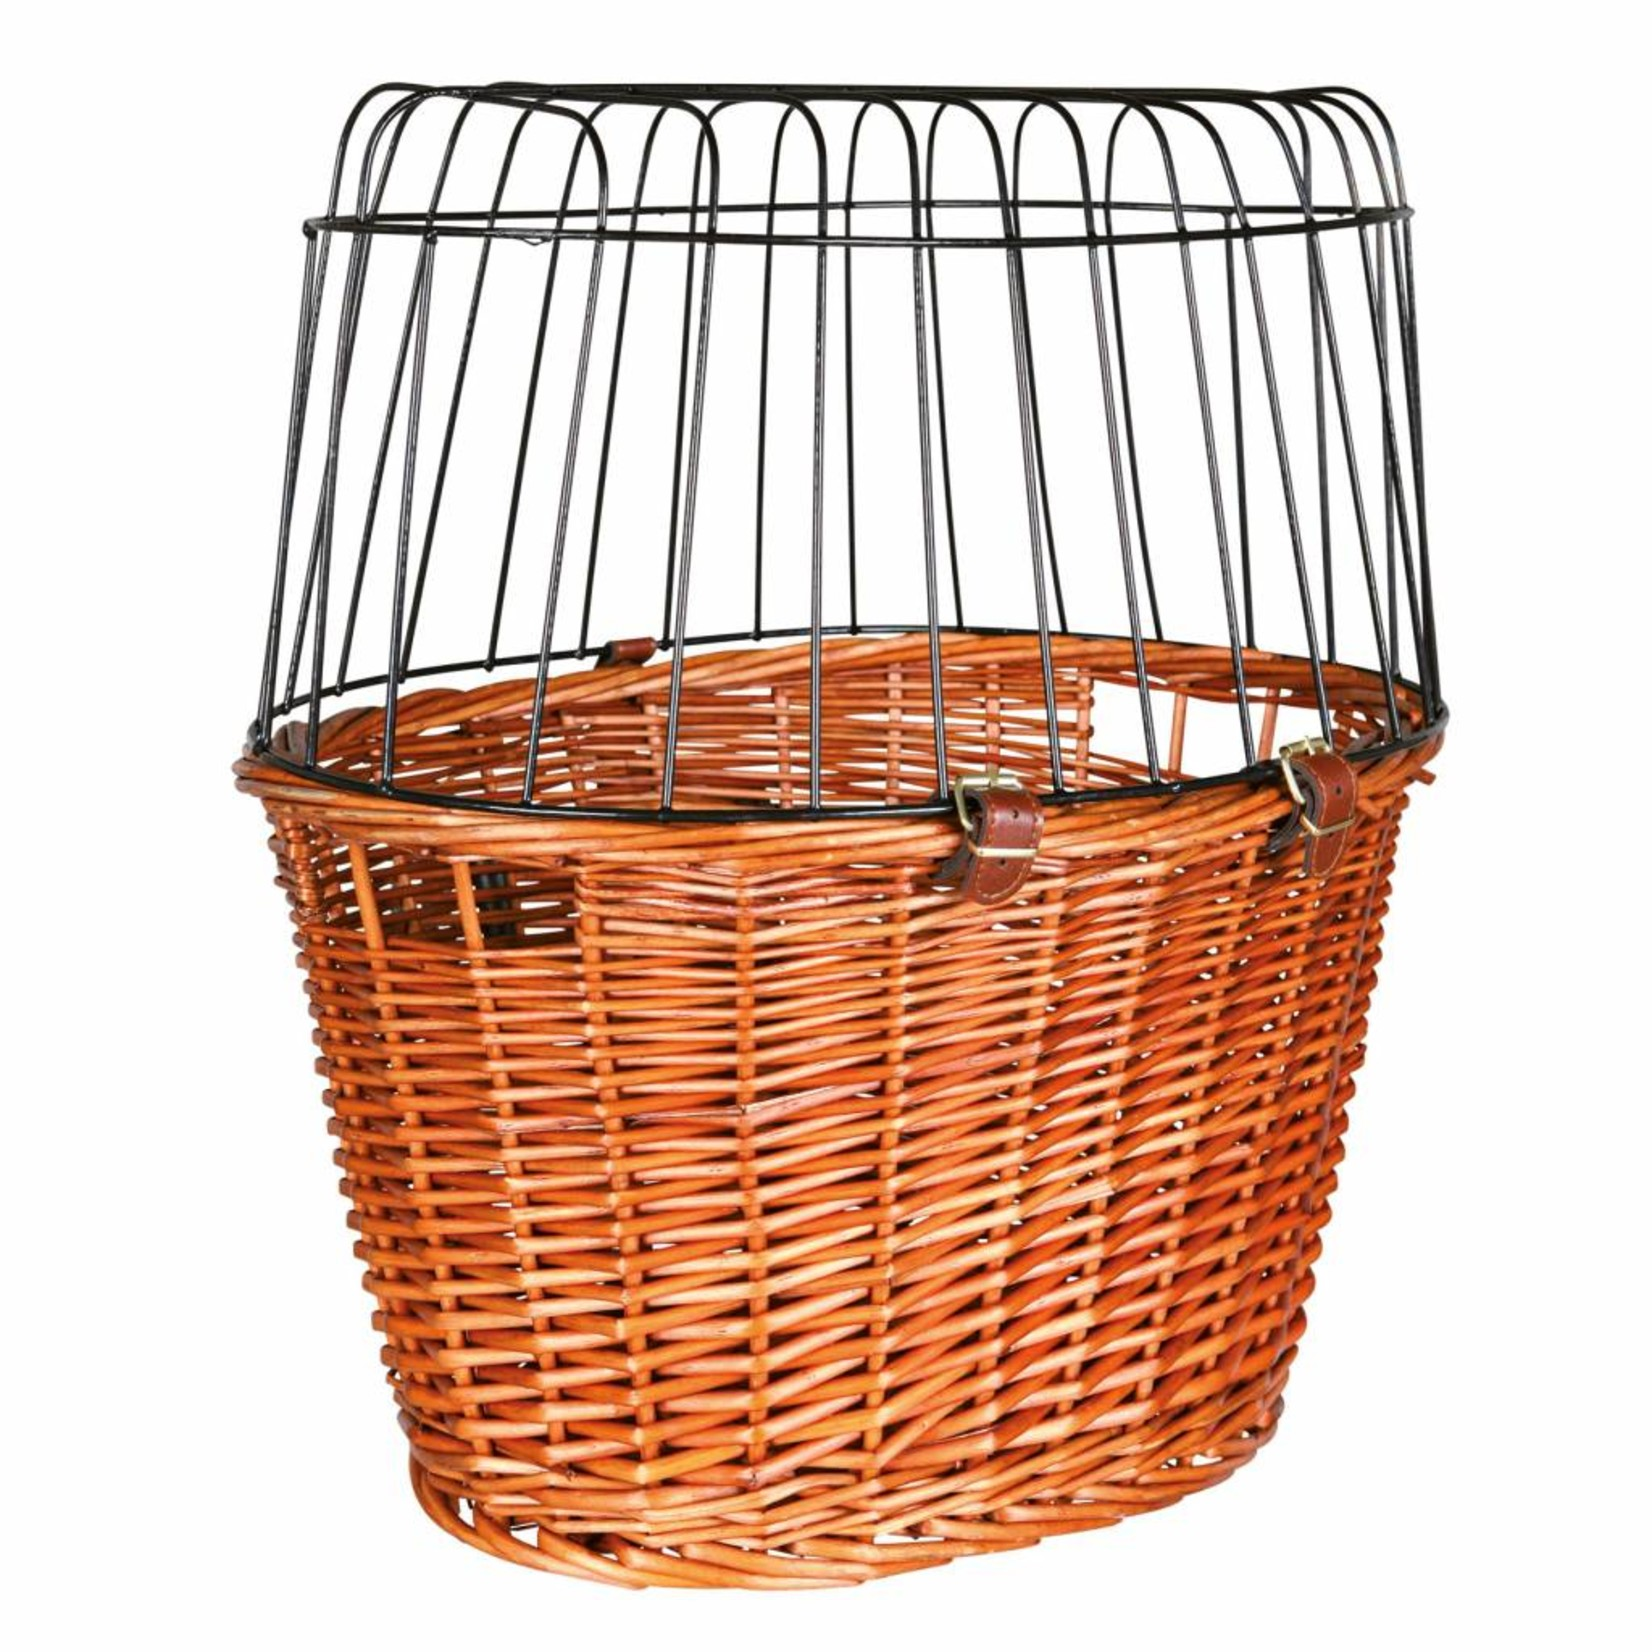 Trixie Willow Bicycle Basket with Wire Mesh Lid, 44 x 48 x 33cm